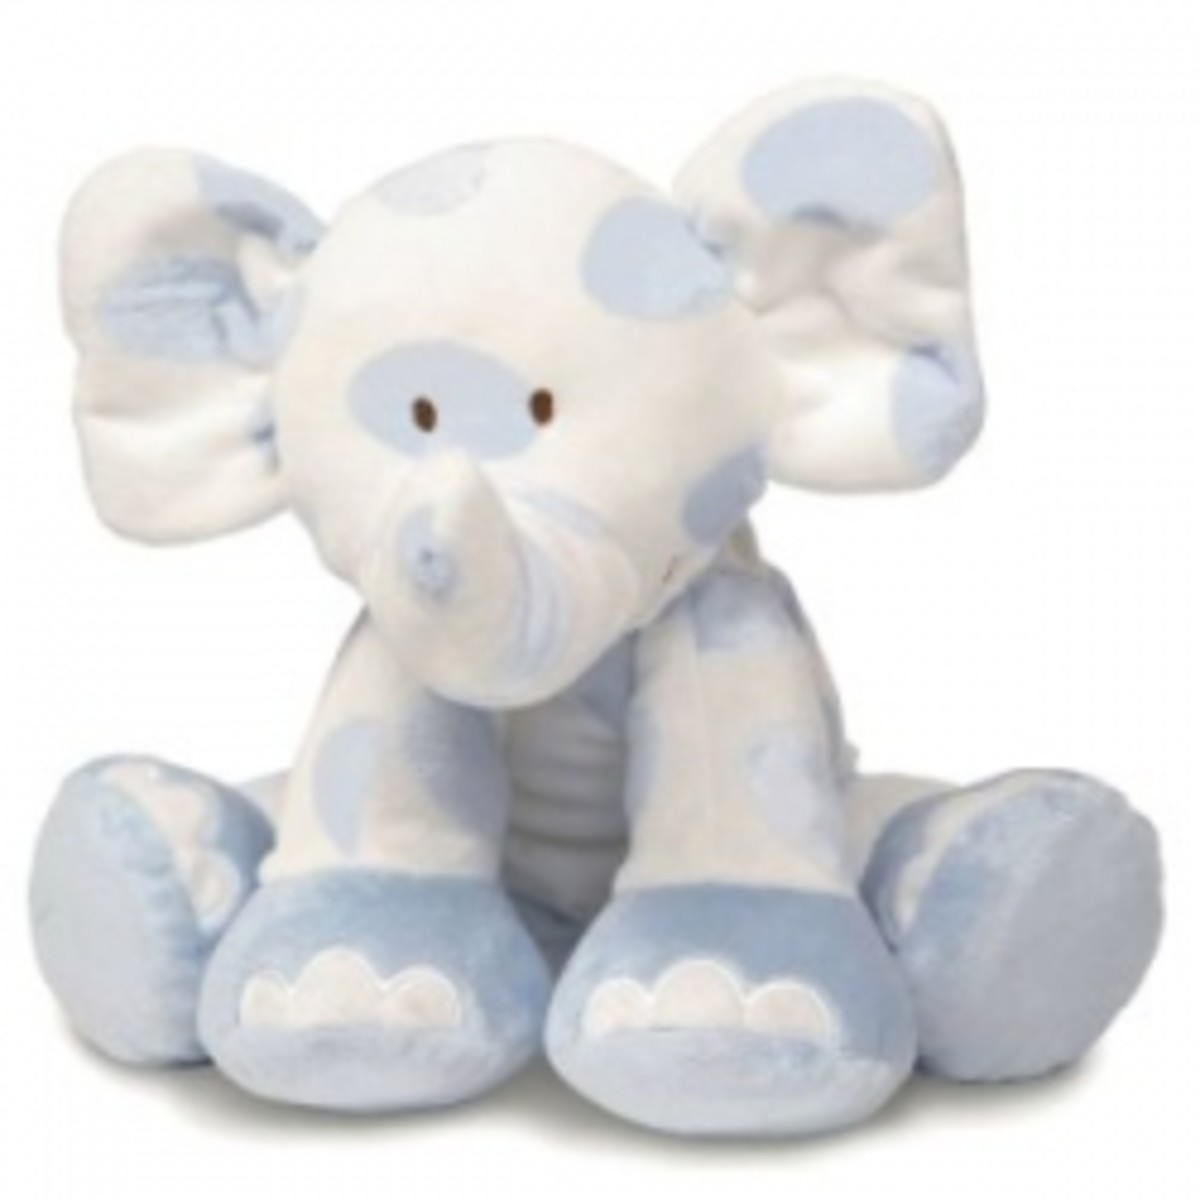 Allergy and Asthma Friendly Stuffed Animals for Babies and Children